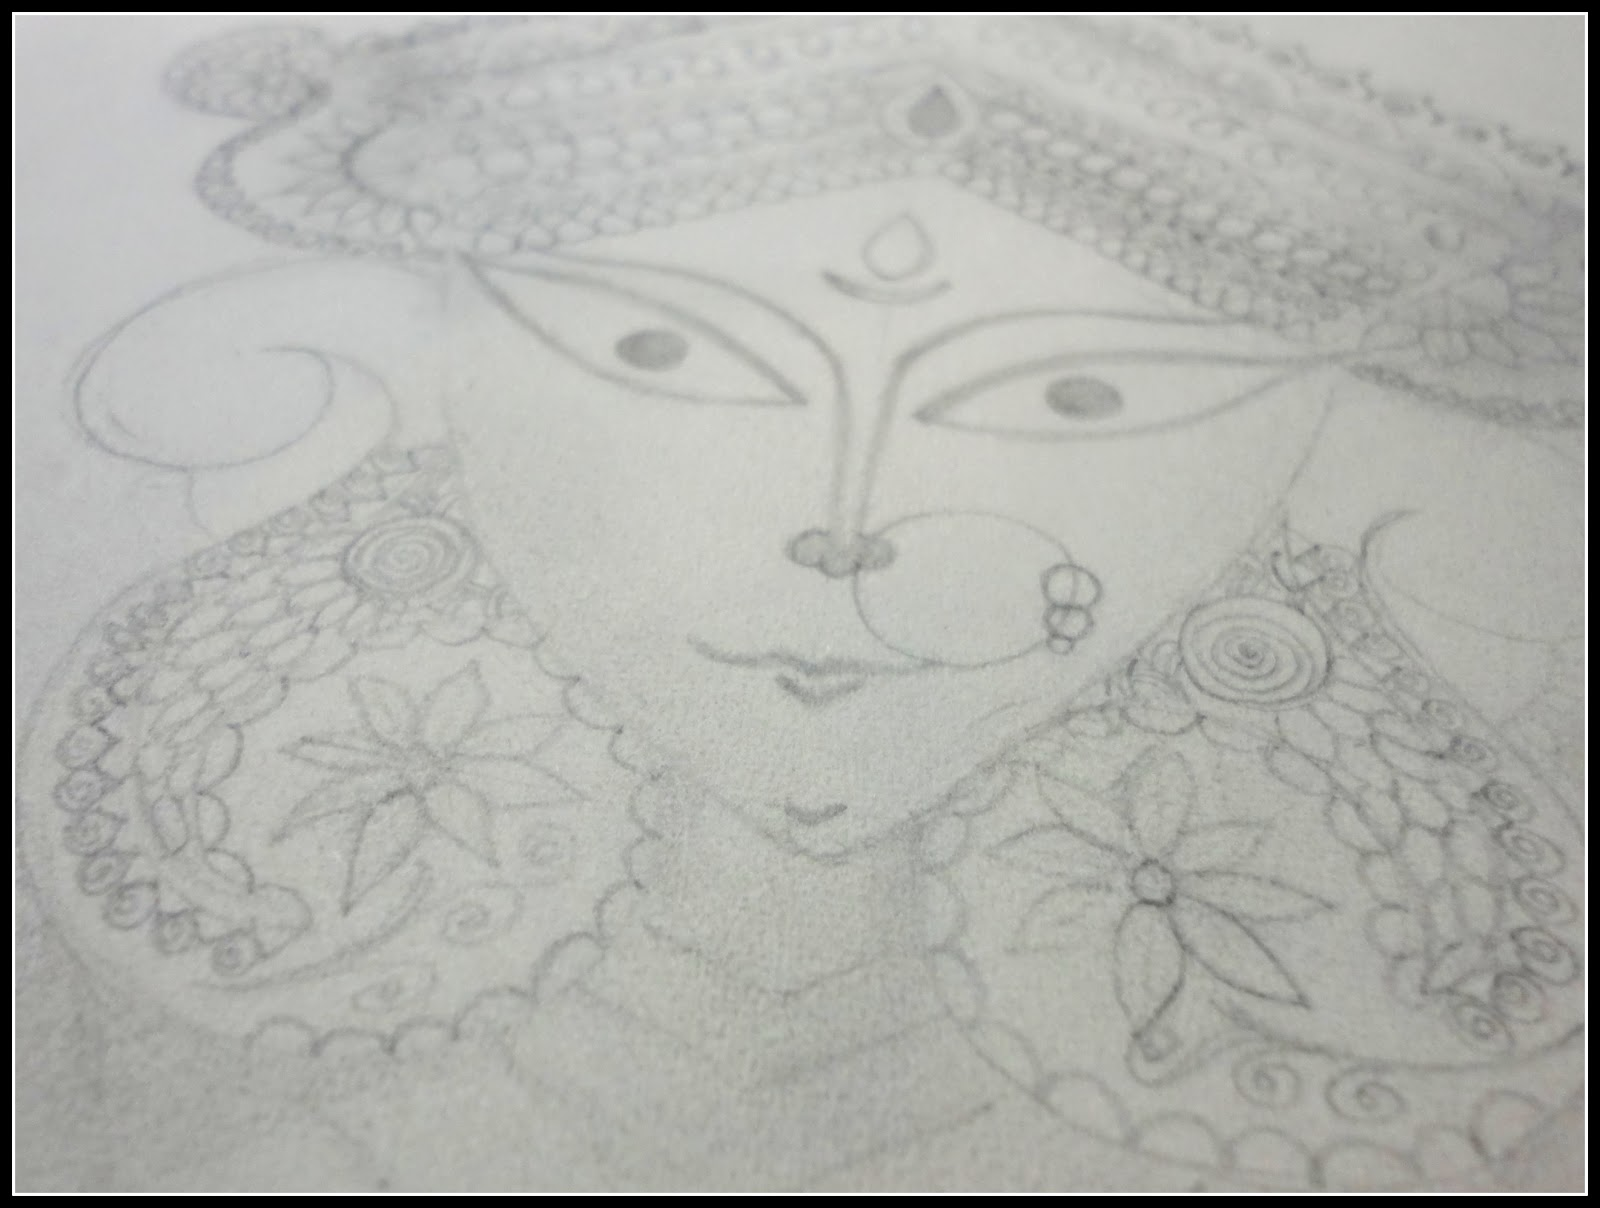 I started with a pencil sketch this sketch has a lot of detailing the intricate work on mukut and jewellery took sometime the expression in the eyes of